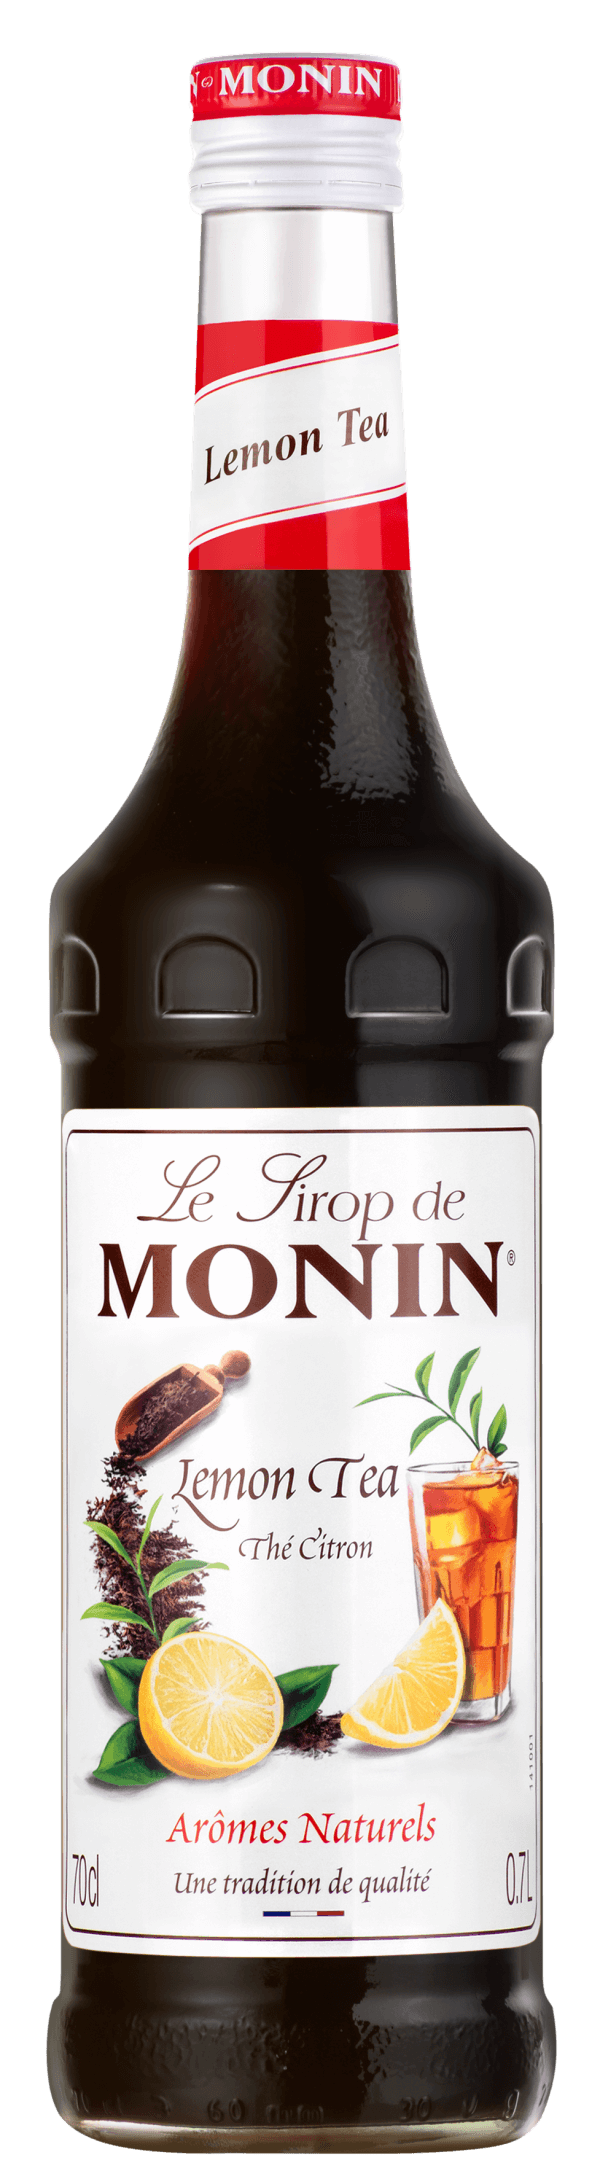 Monin_lemon_tea